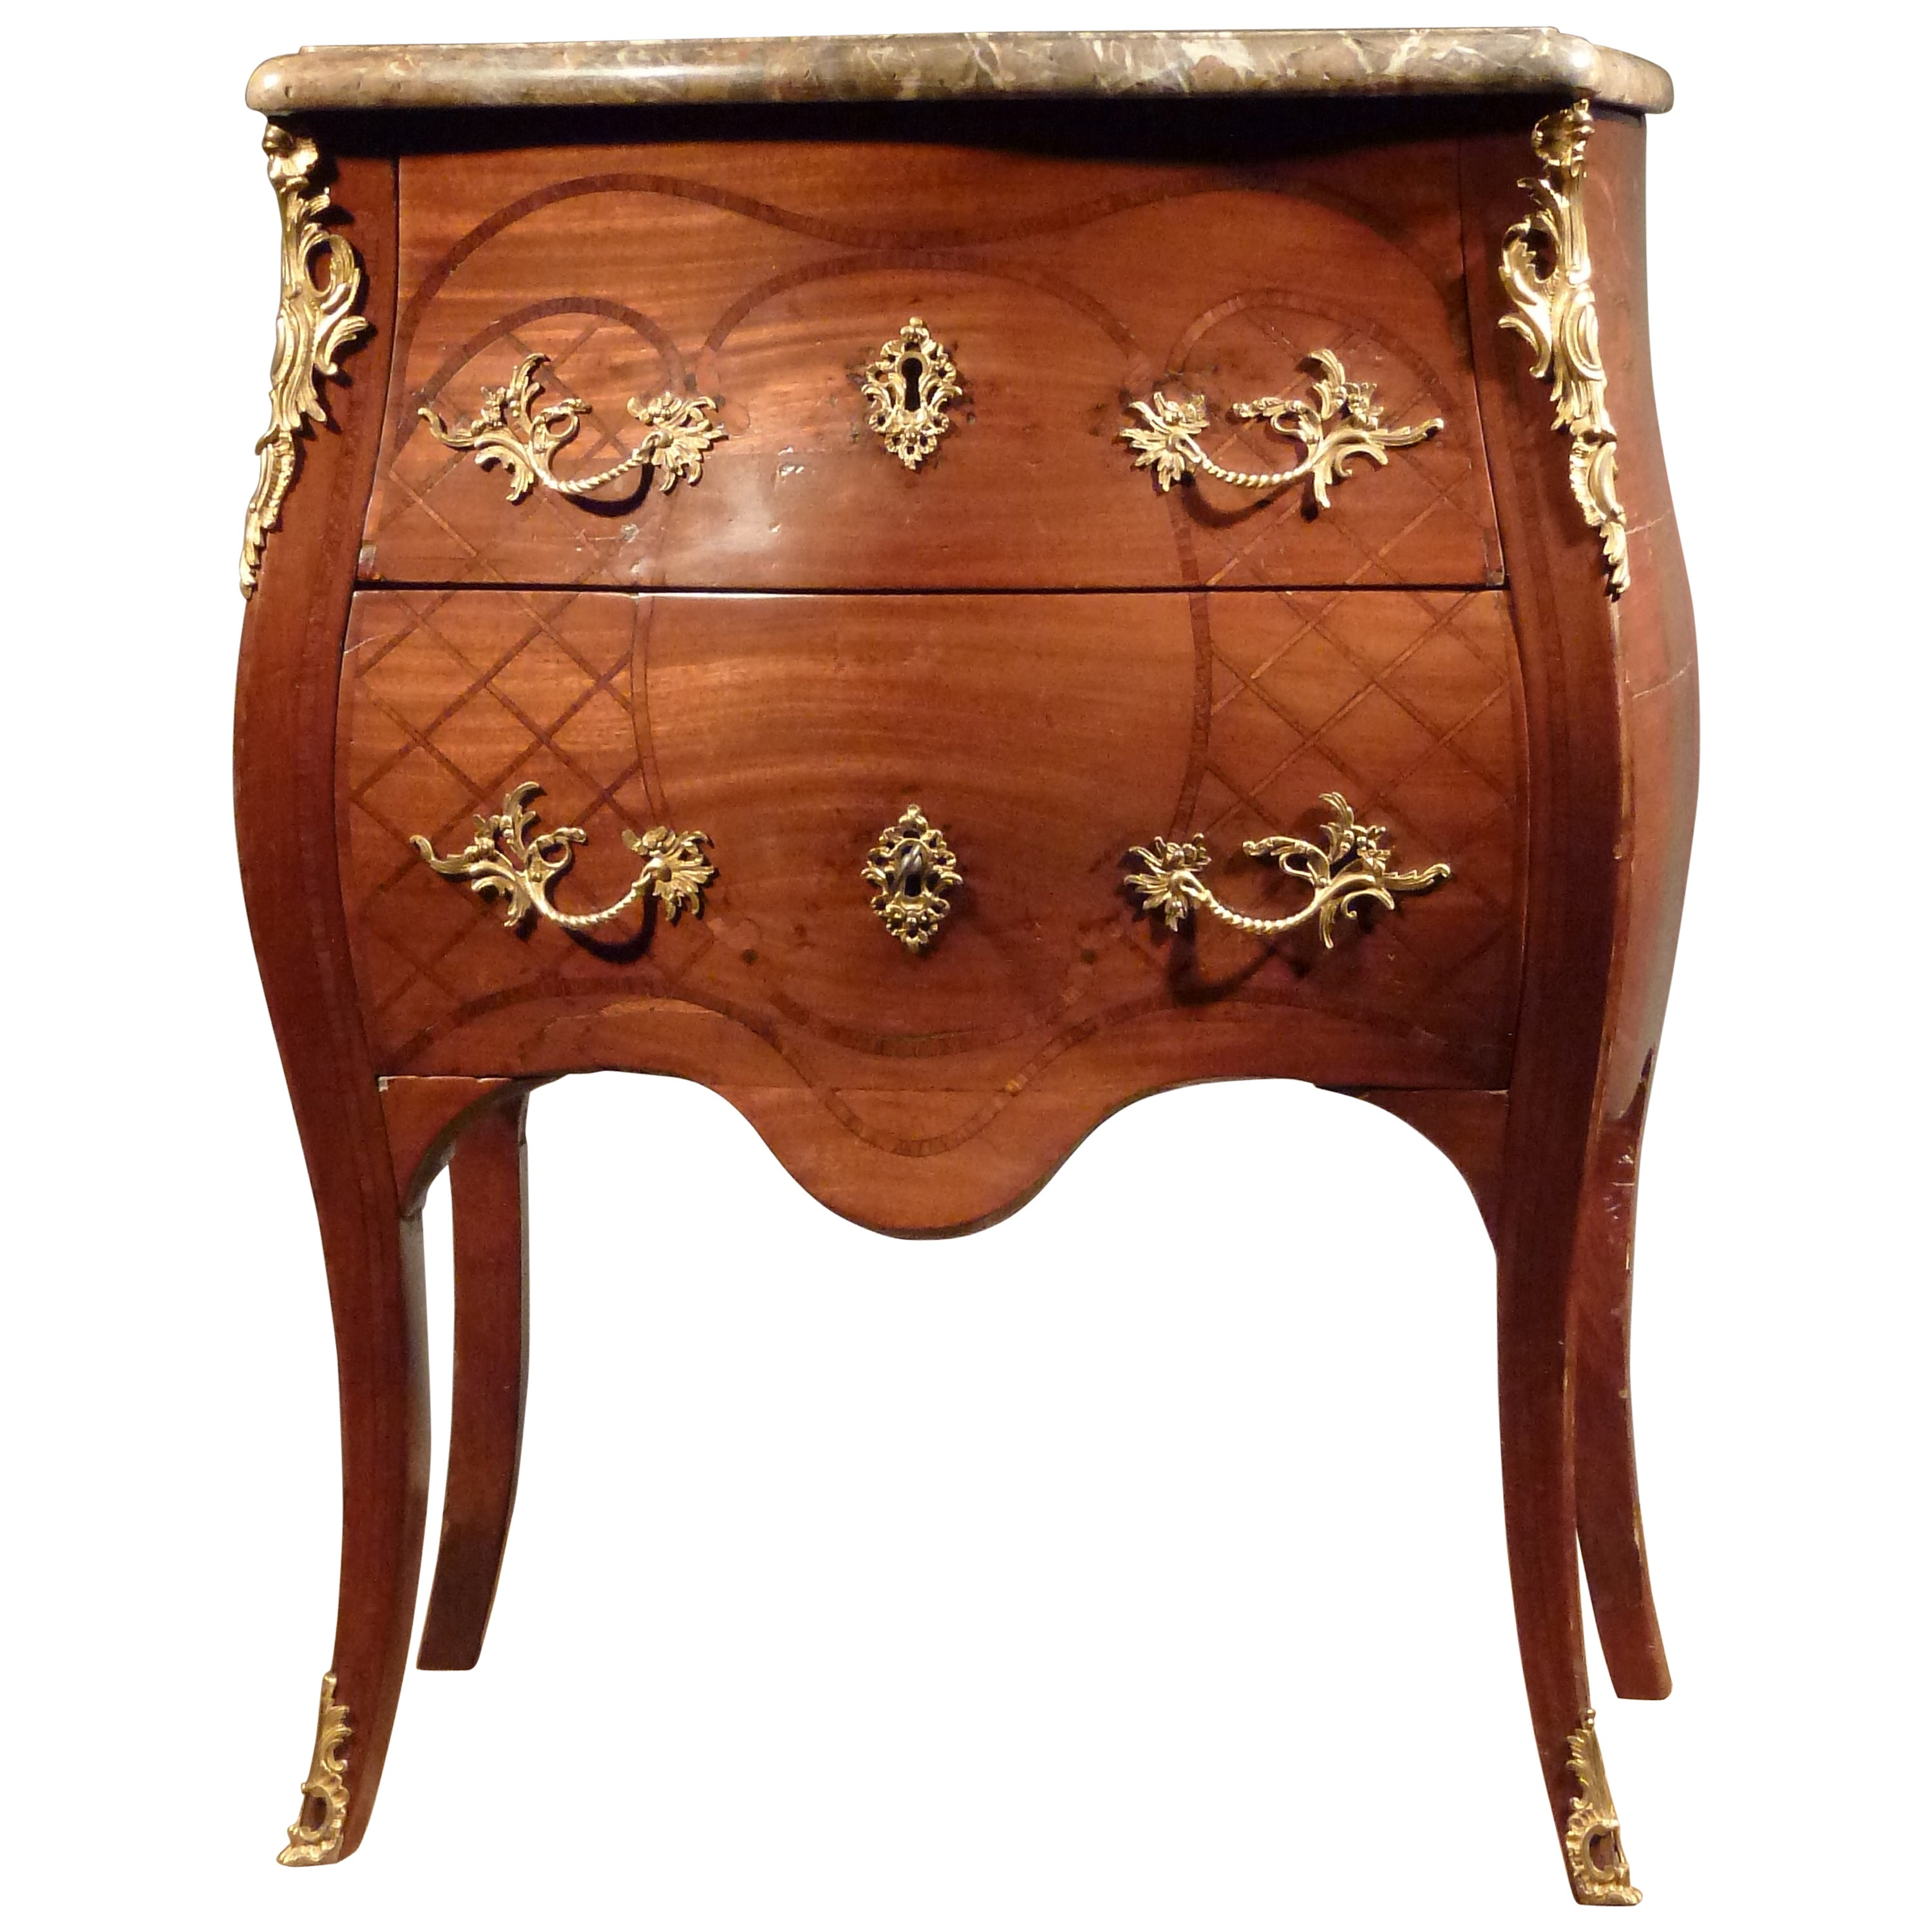 Commode Rose Dutch Louis Xv Commode Bearing The Stamp Of The Guild Of Saint Joseph